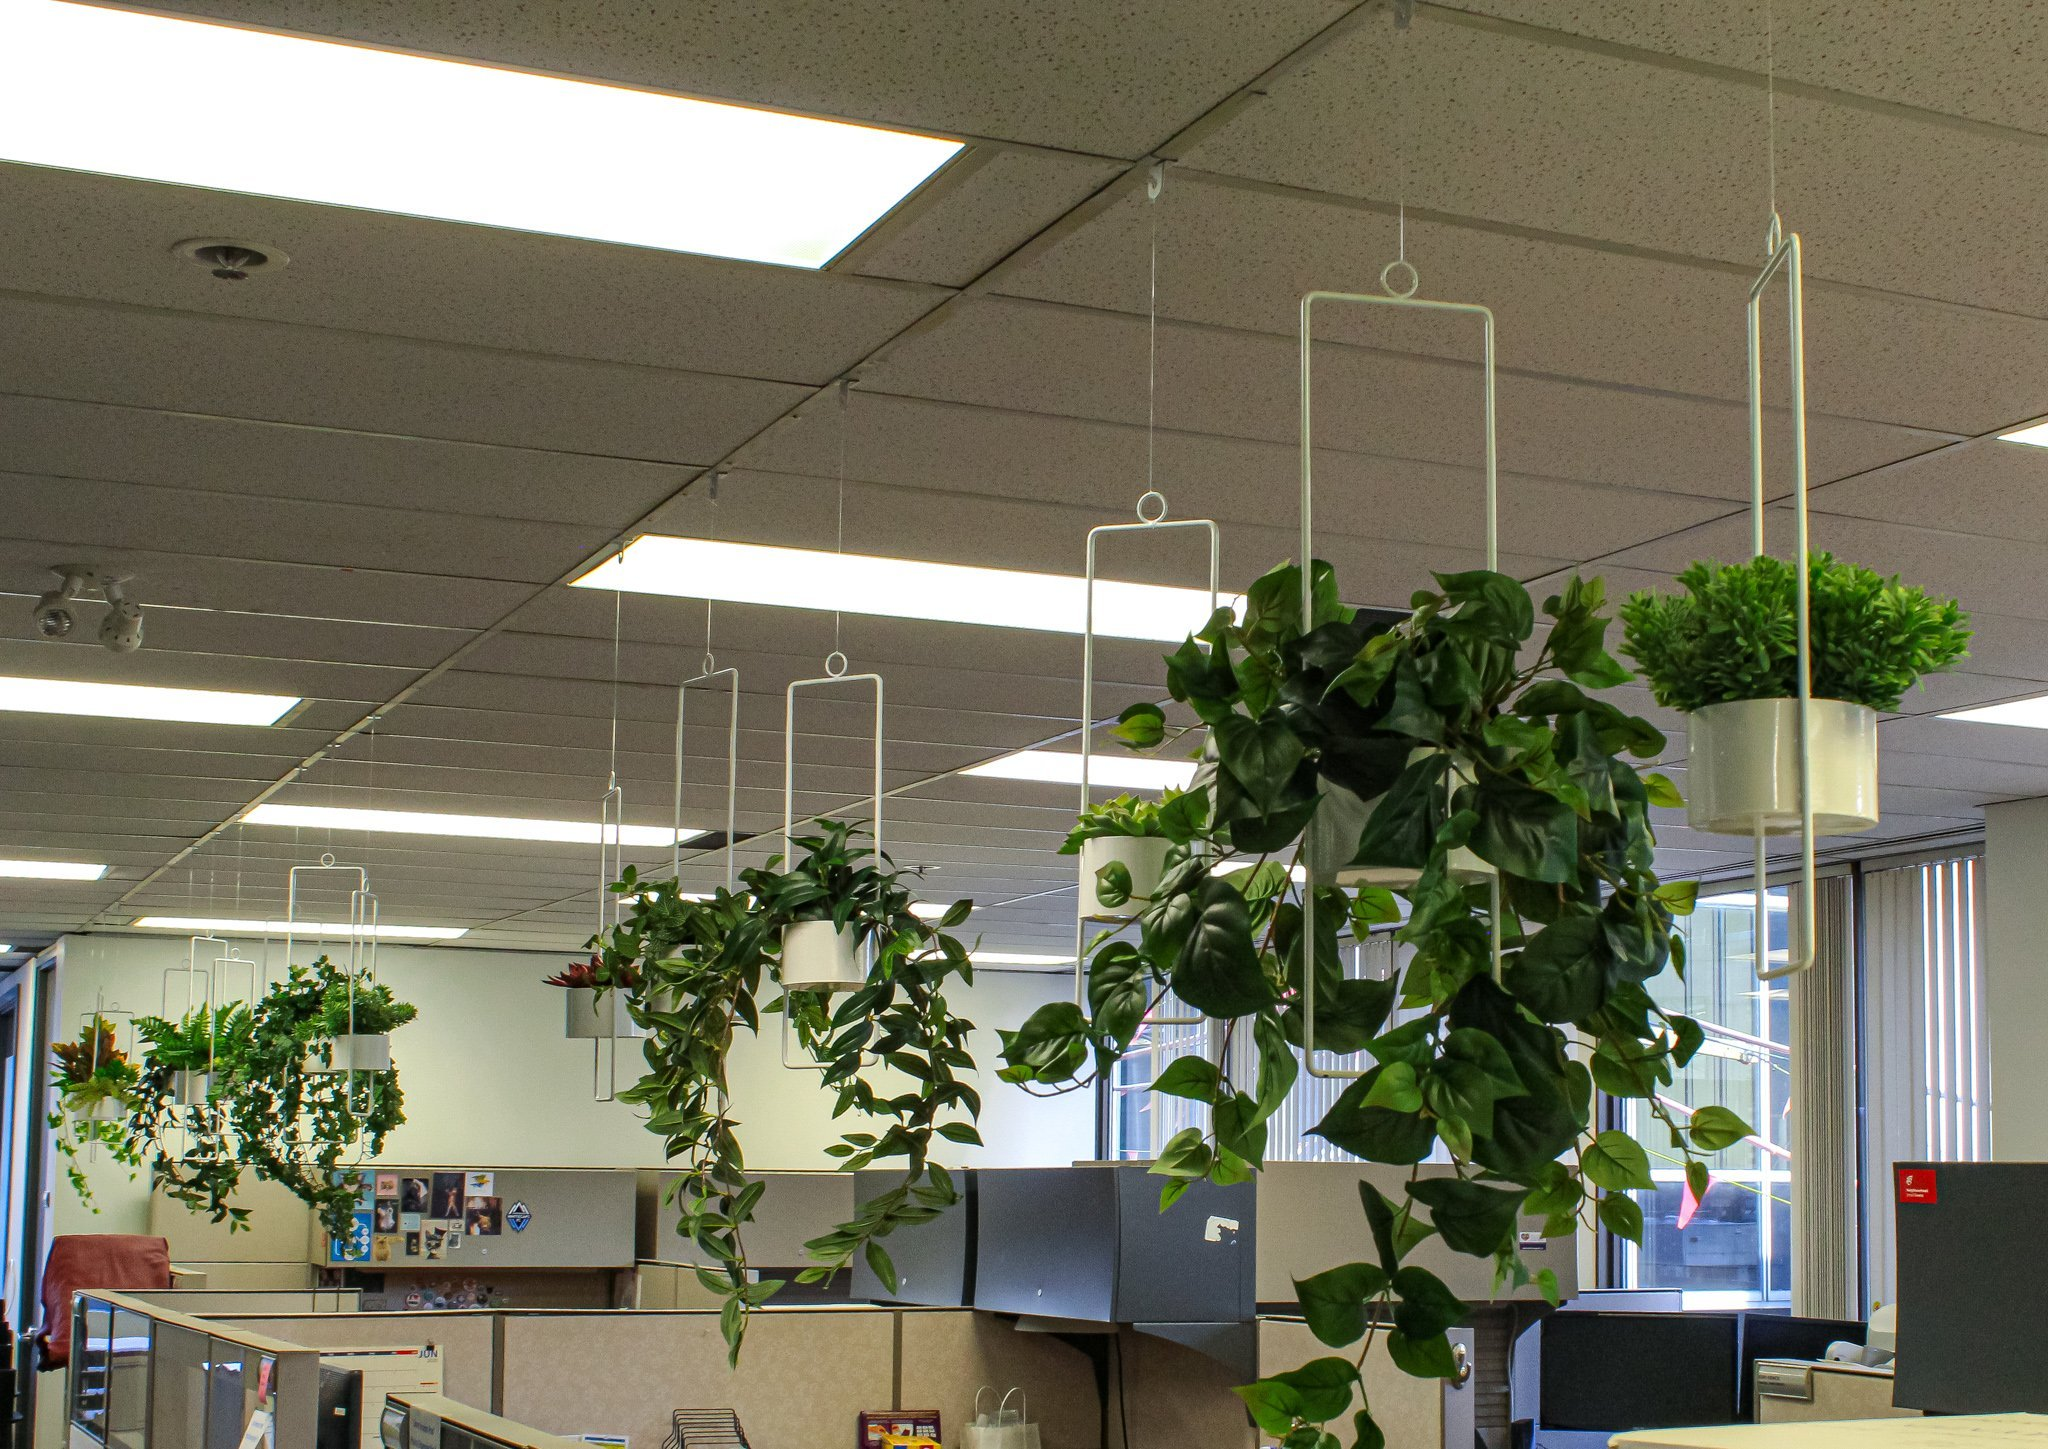 White metal hanging planters, two sizes with various artificial greenery hanging over cubicles